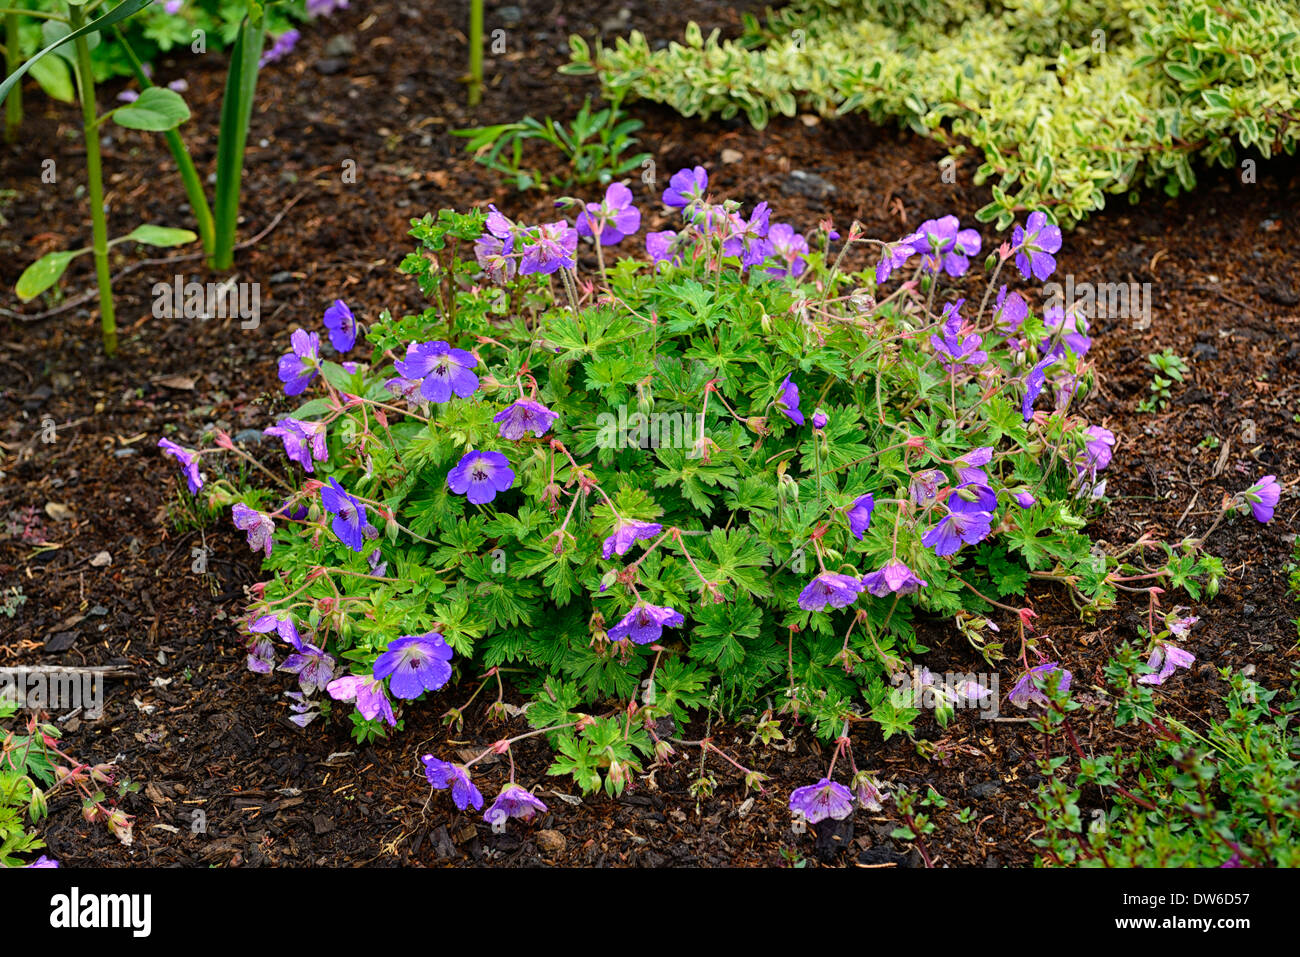 Geranium rozanne purple flowers flowering stock photos geranium geranium rozanne purple flowers flowering geraniums perennials groundcover cover closeups plant portraits stock image mightylinksfo